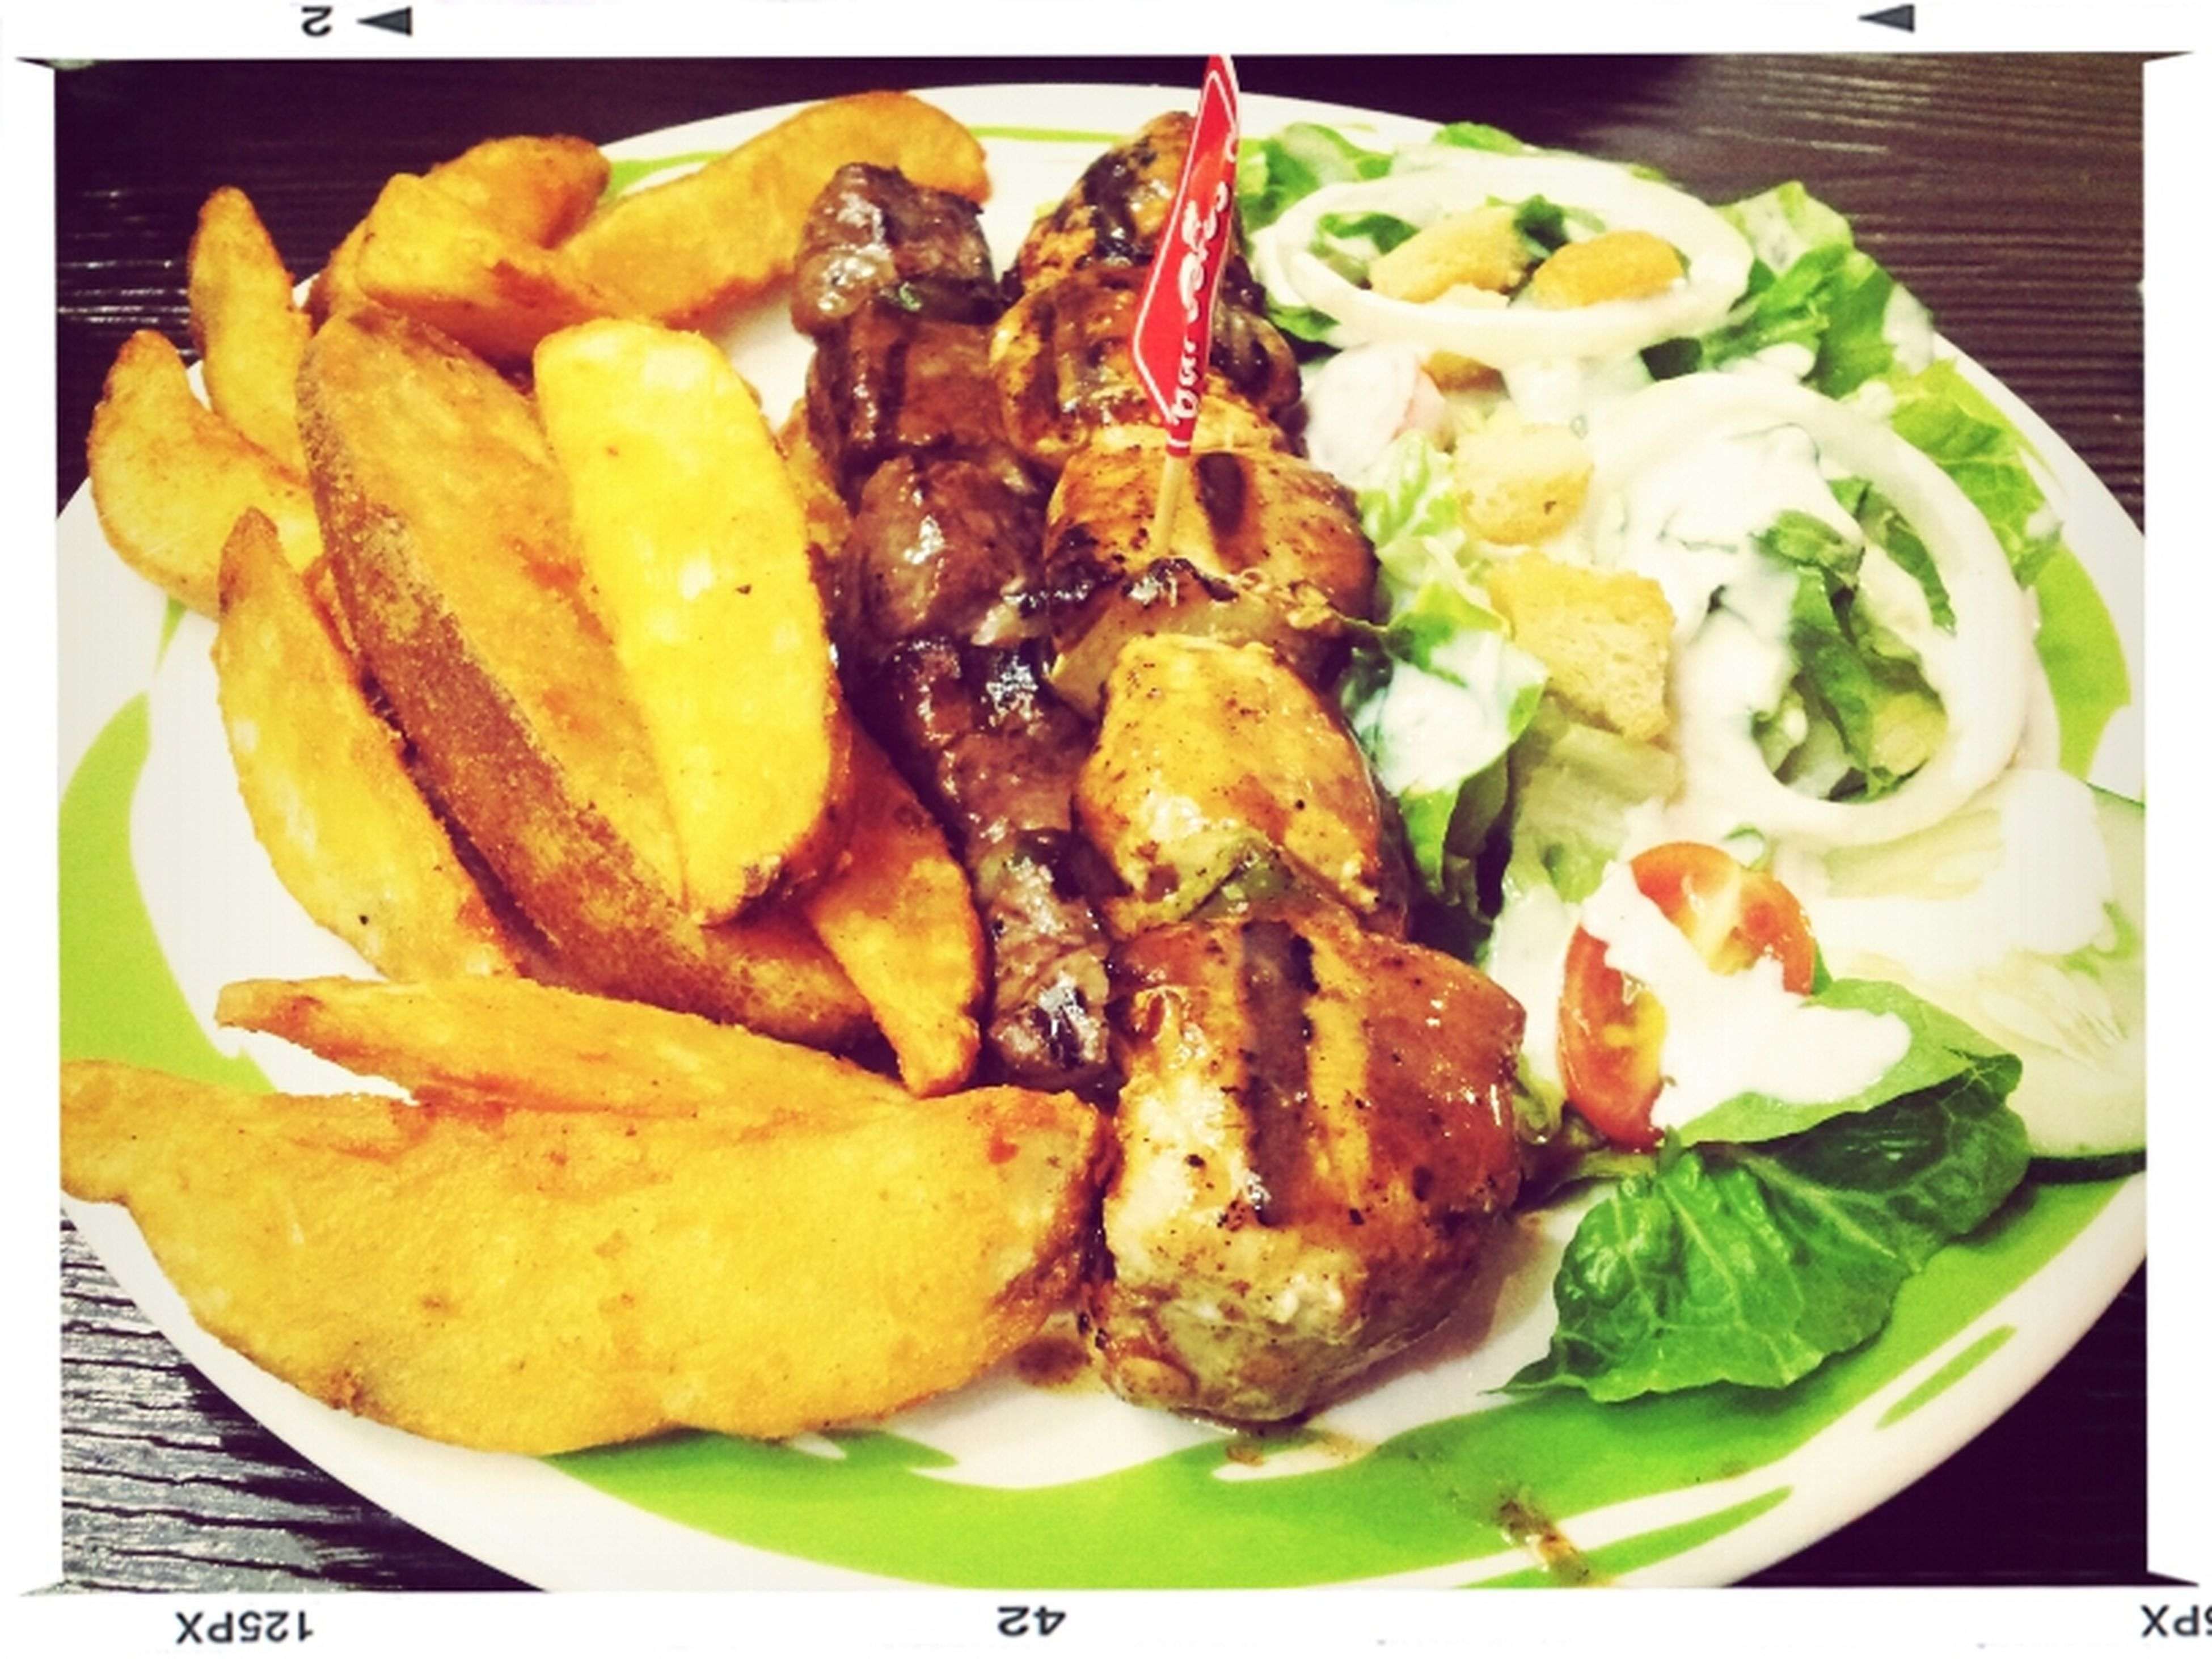 Mixed beef and chicken scewer in supa hot peri sauce with potato mojos and salad... Chilly Scewer Food